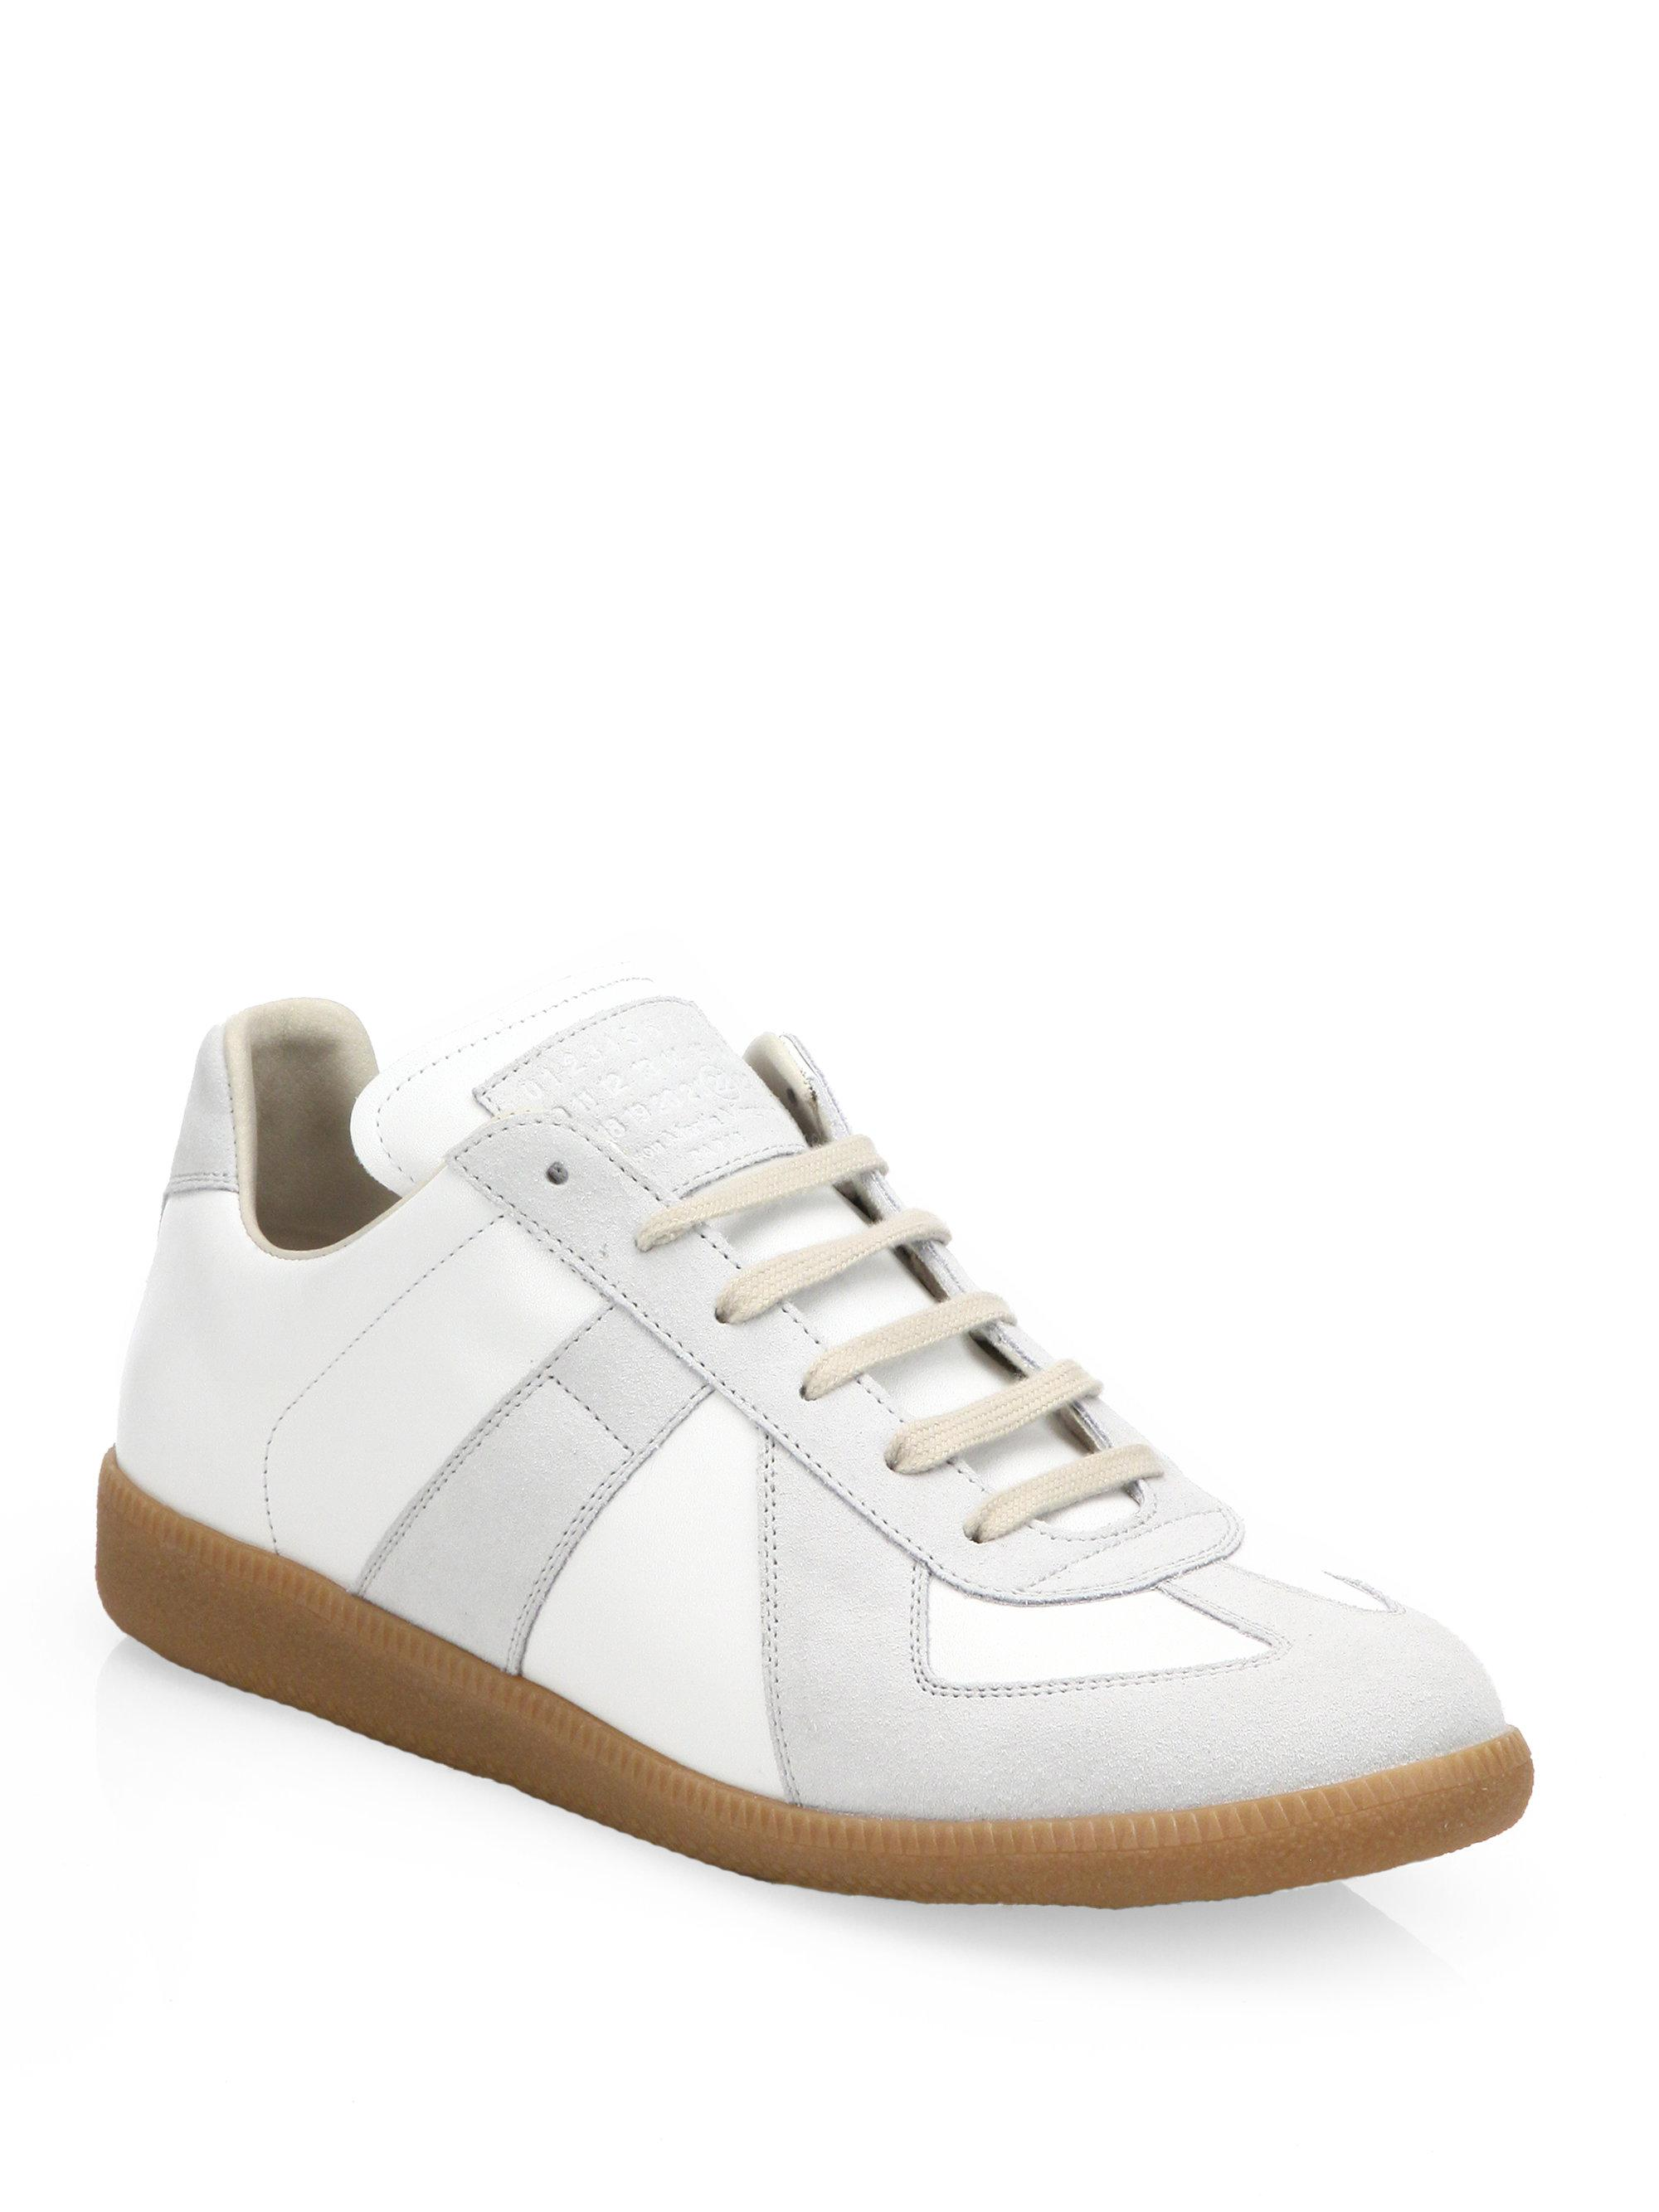 Maison Margiela white and grey replica leather sneakers outlet low price new cheap price 4u5Dq